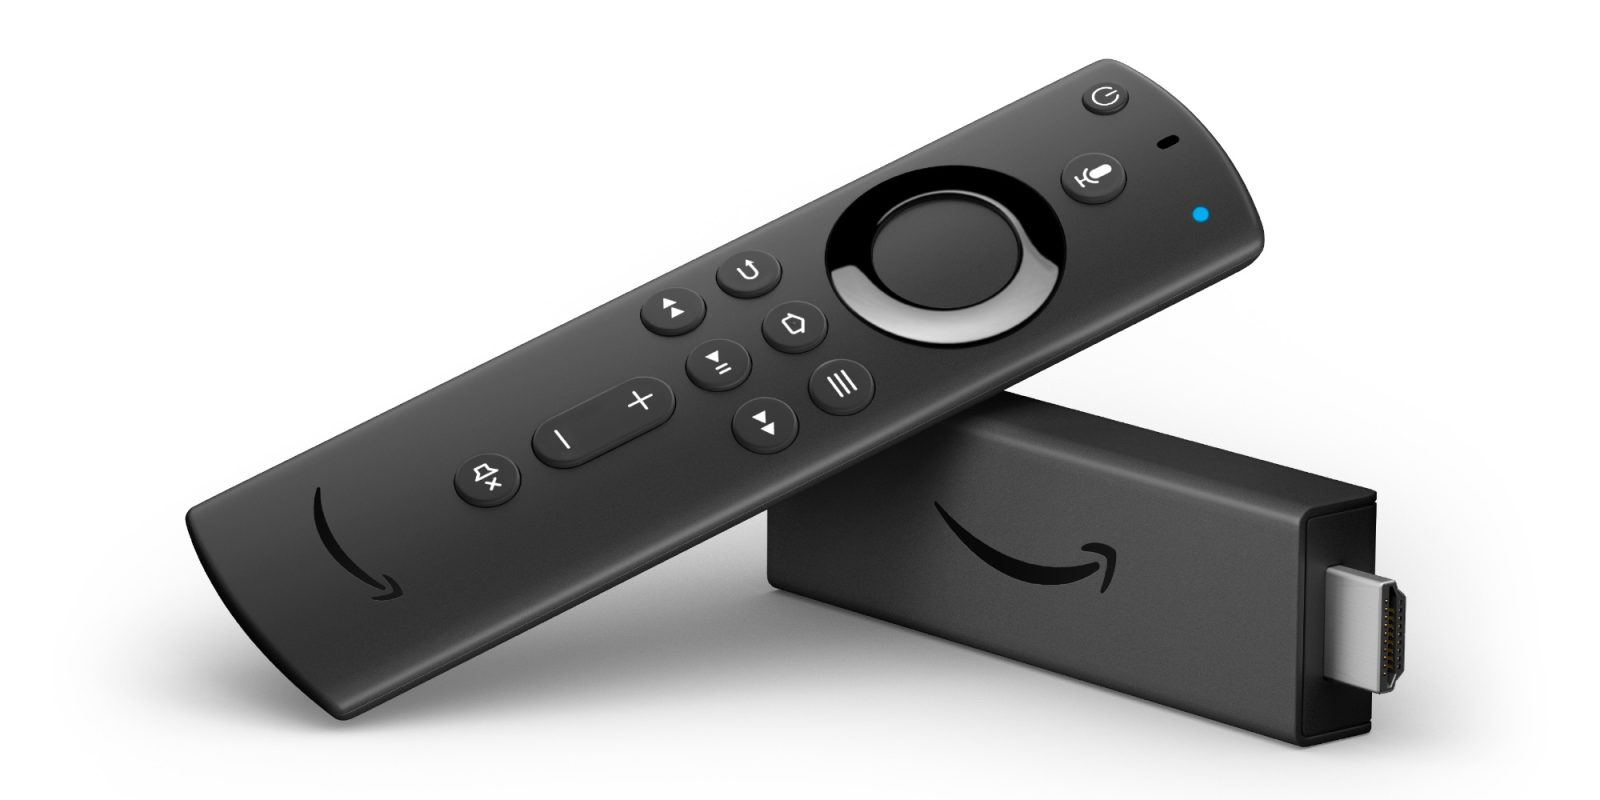 Amazon discounts Fire TV lineup: 4K Stick at $35, Recast $145, more from $25